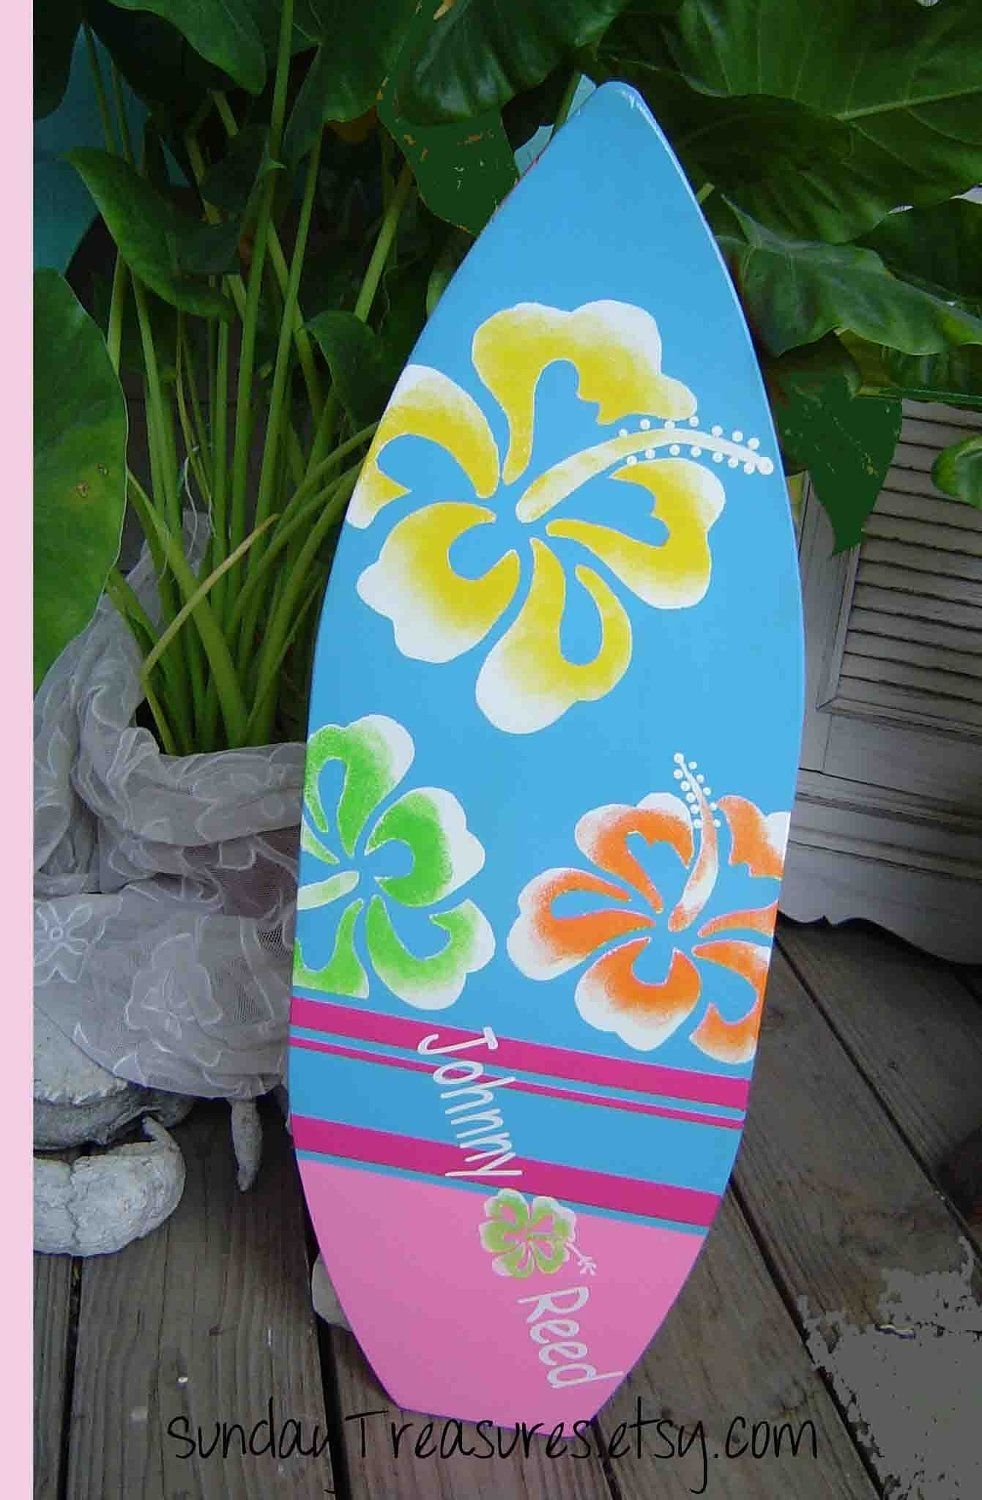 27 Inch Surfboard (View 19 of 20)